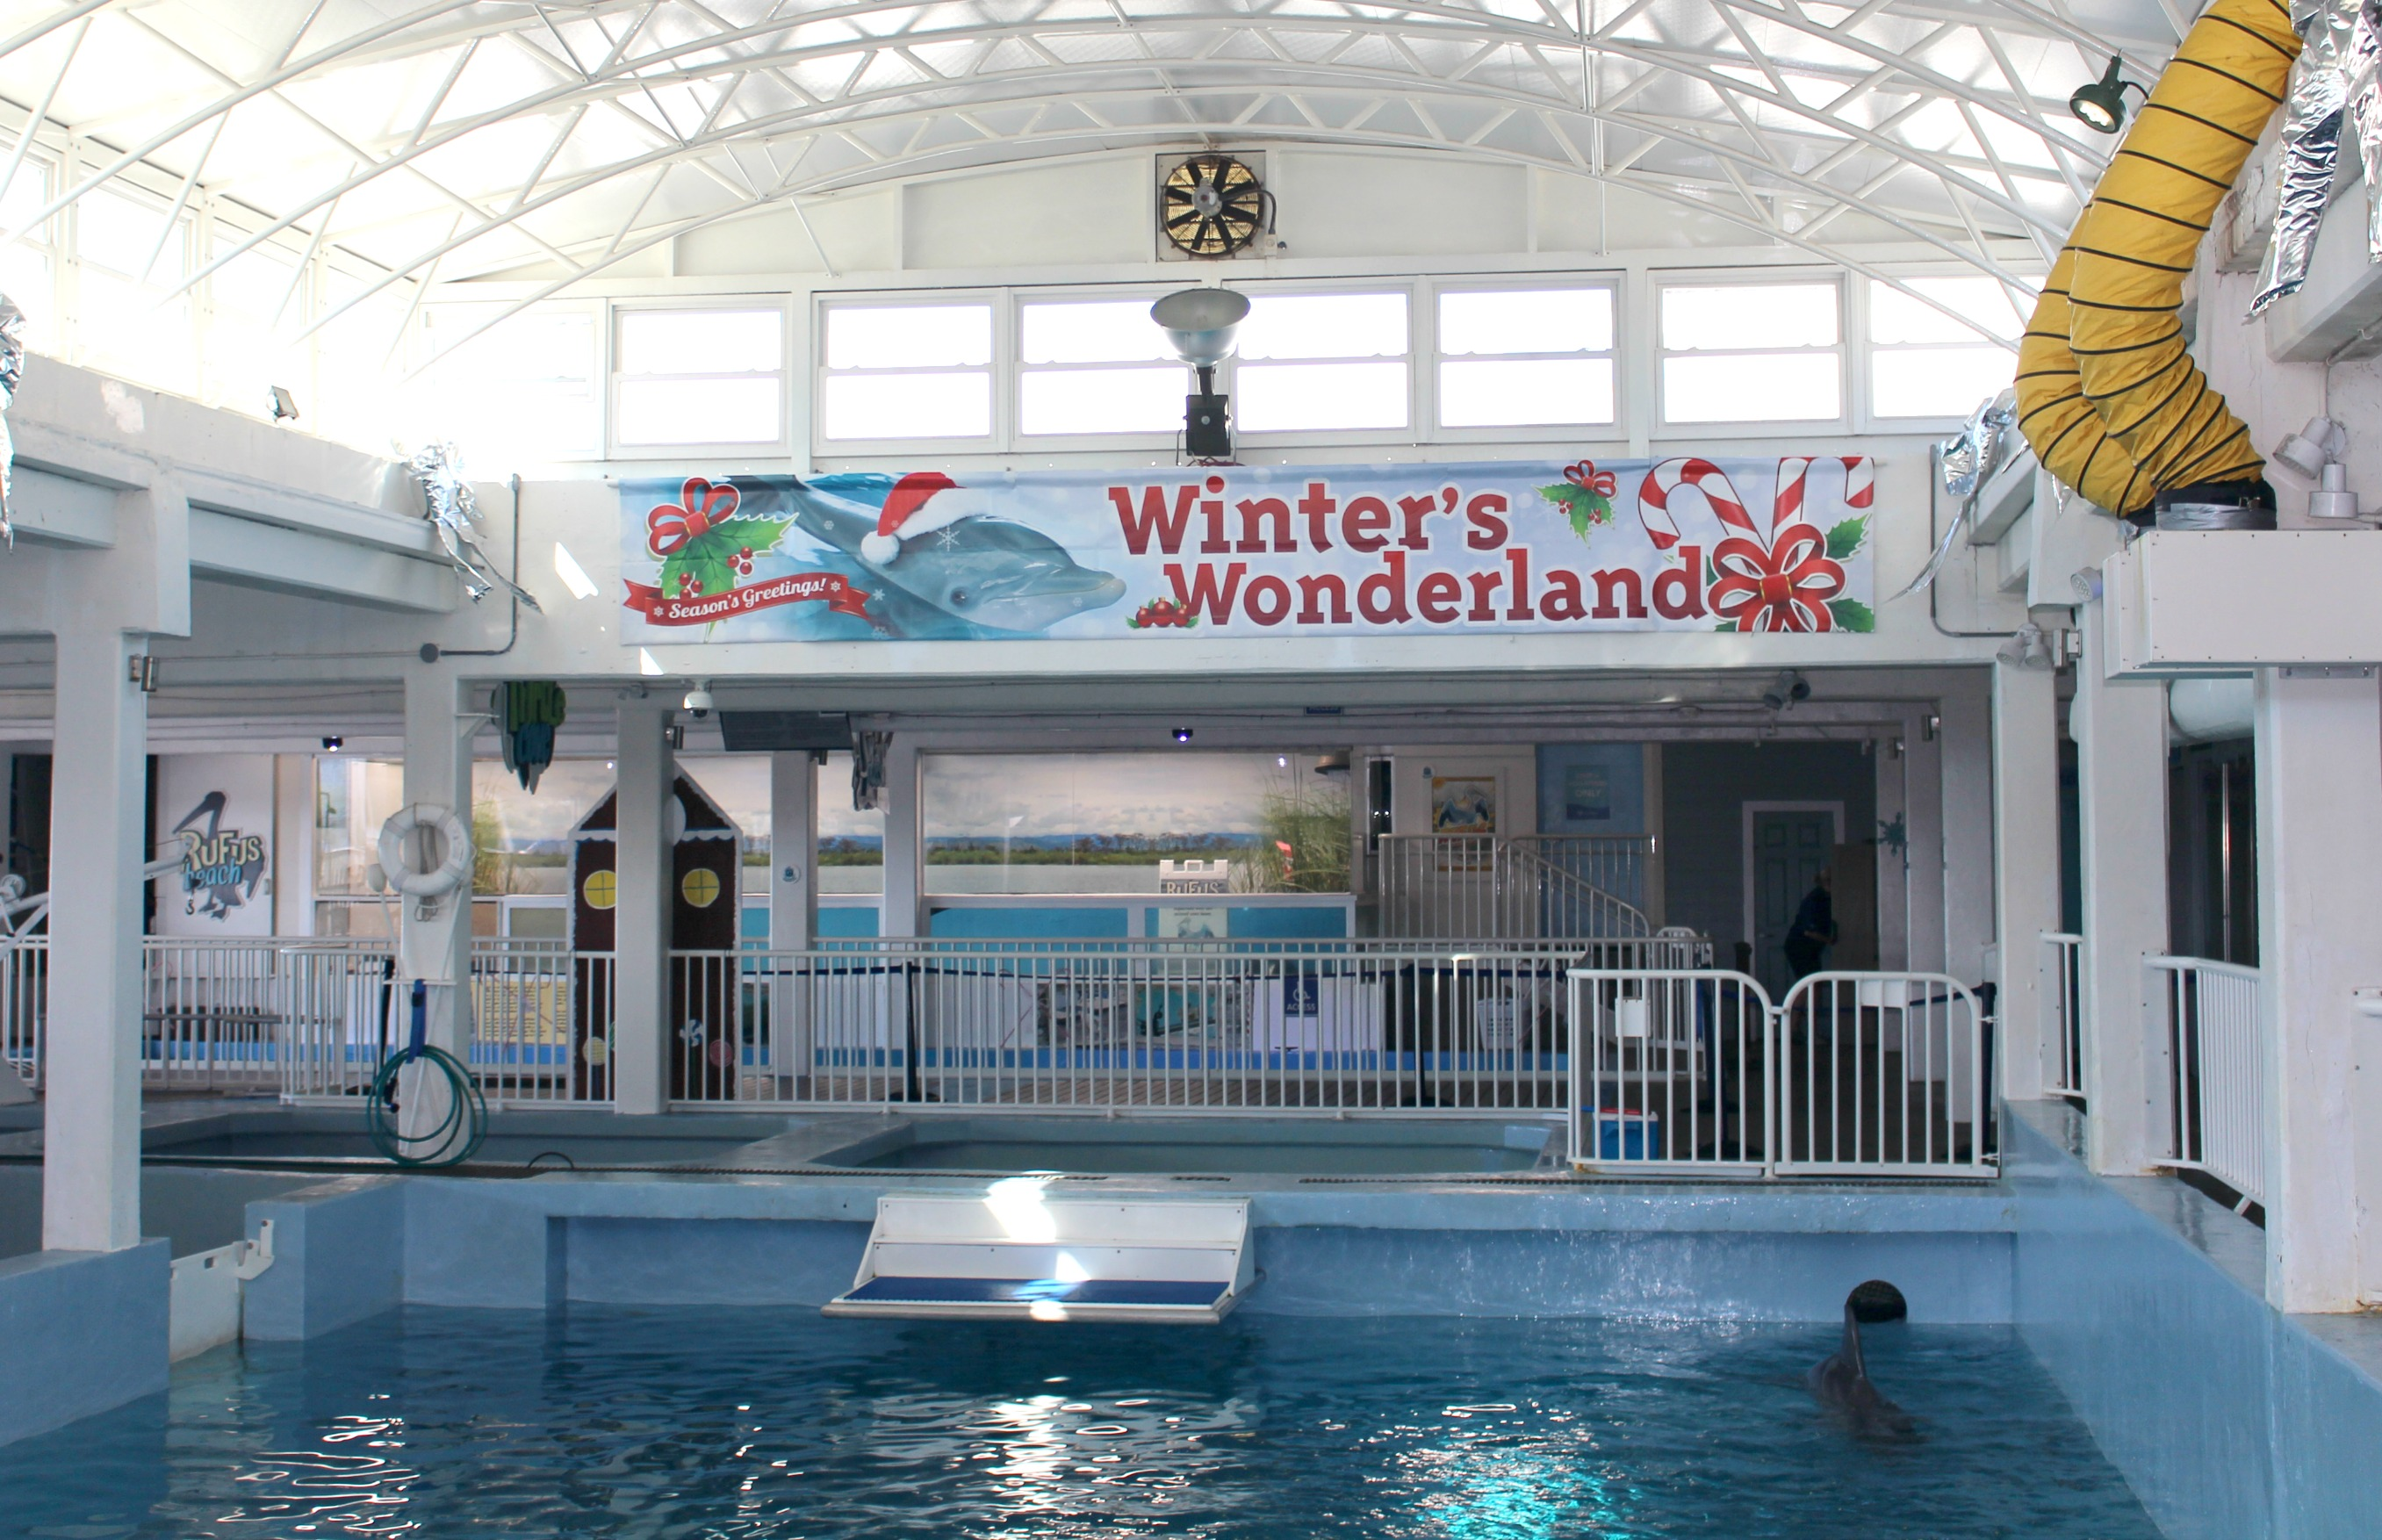 Winter's Wonderland and Sea of Lights Clearwater Marine Aquarium